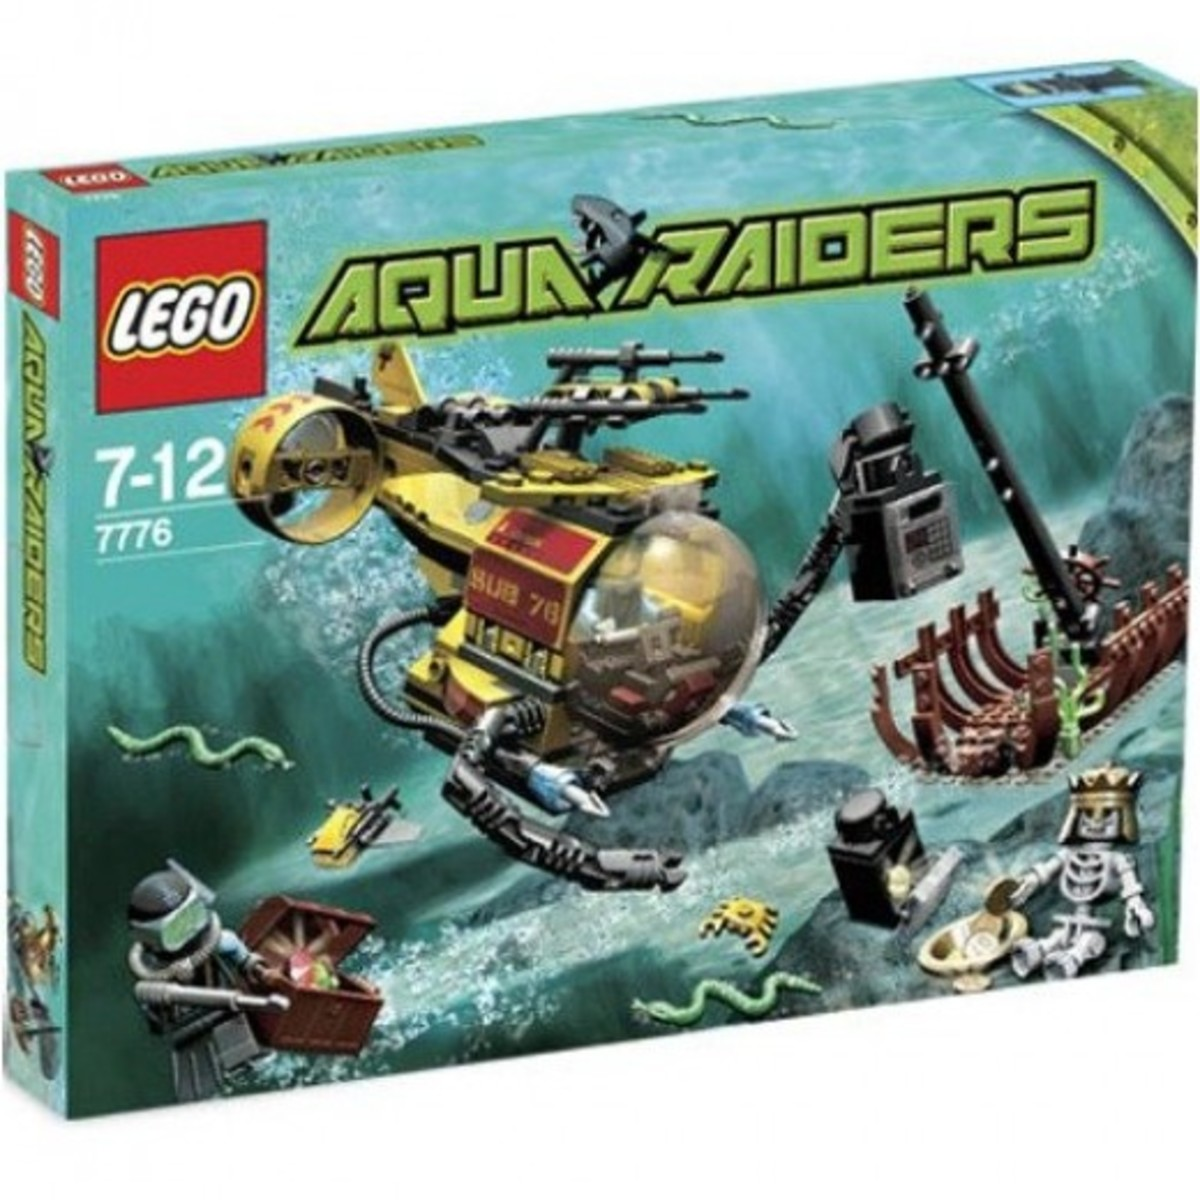 LEGO Aqua Raiders The Shipwreck 7776 Box